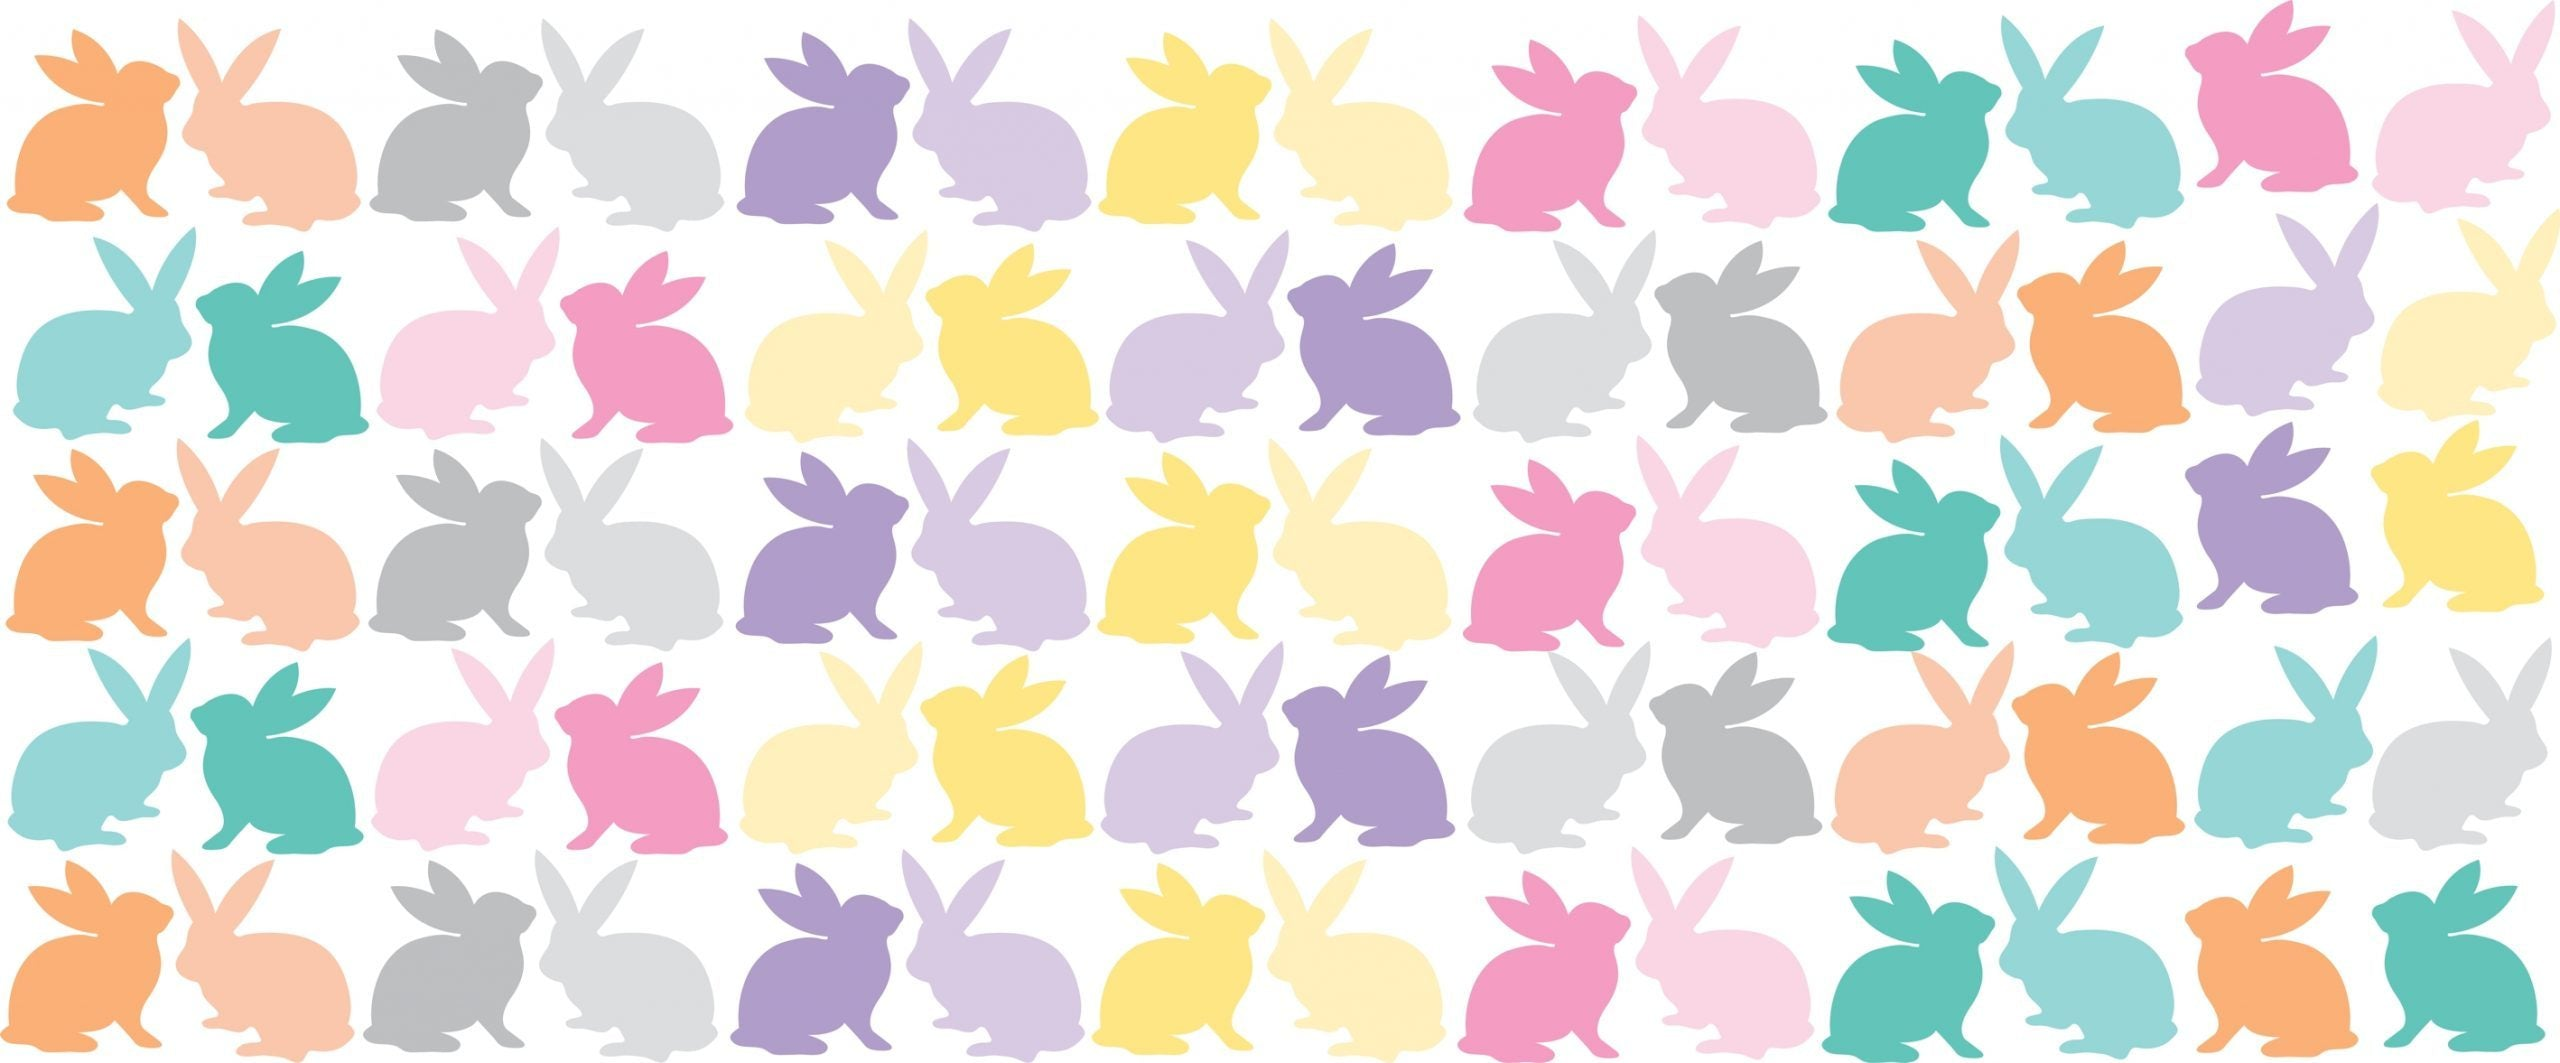 Colourful Bunny Pattern - Lilly and Bee